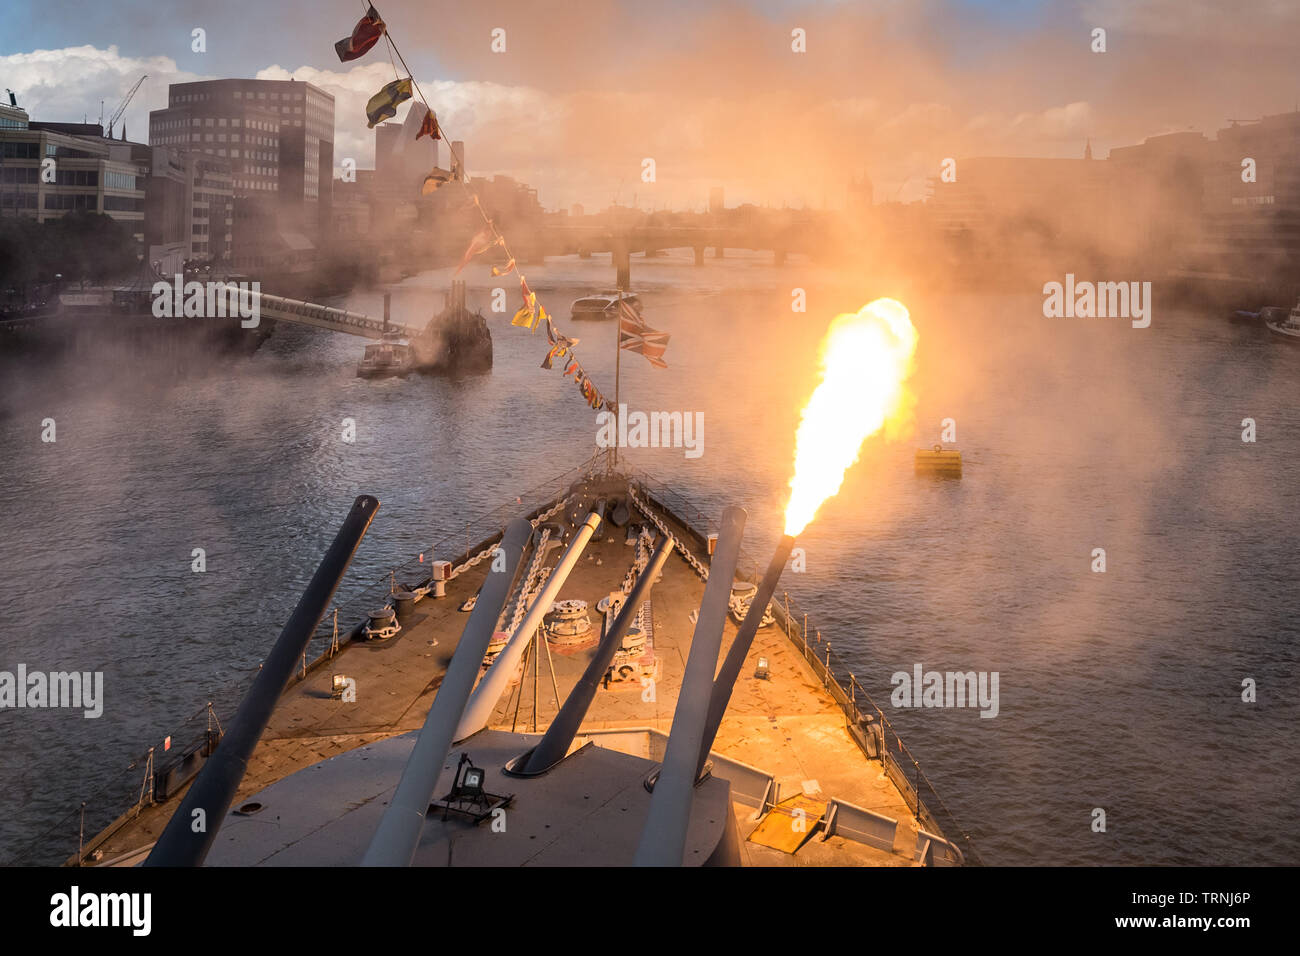 London, UK. 6th June 2019. Imperial War Museum marks 75th anniversary of the D-Day landing on board HMS Belfast. Three forward Guns are fired three times at 11:00am. Credit: Guy Corbishley/Alamy Live News Stock Photo